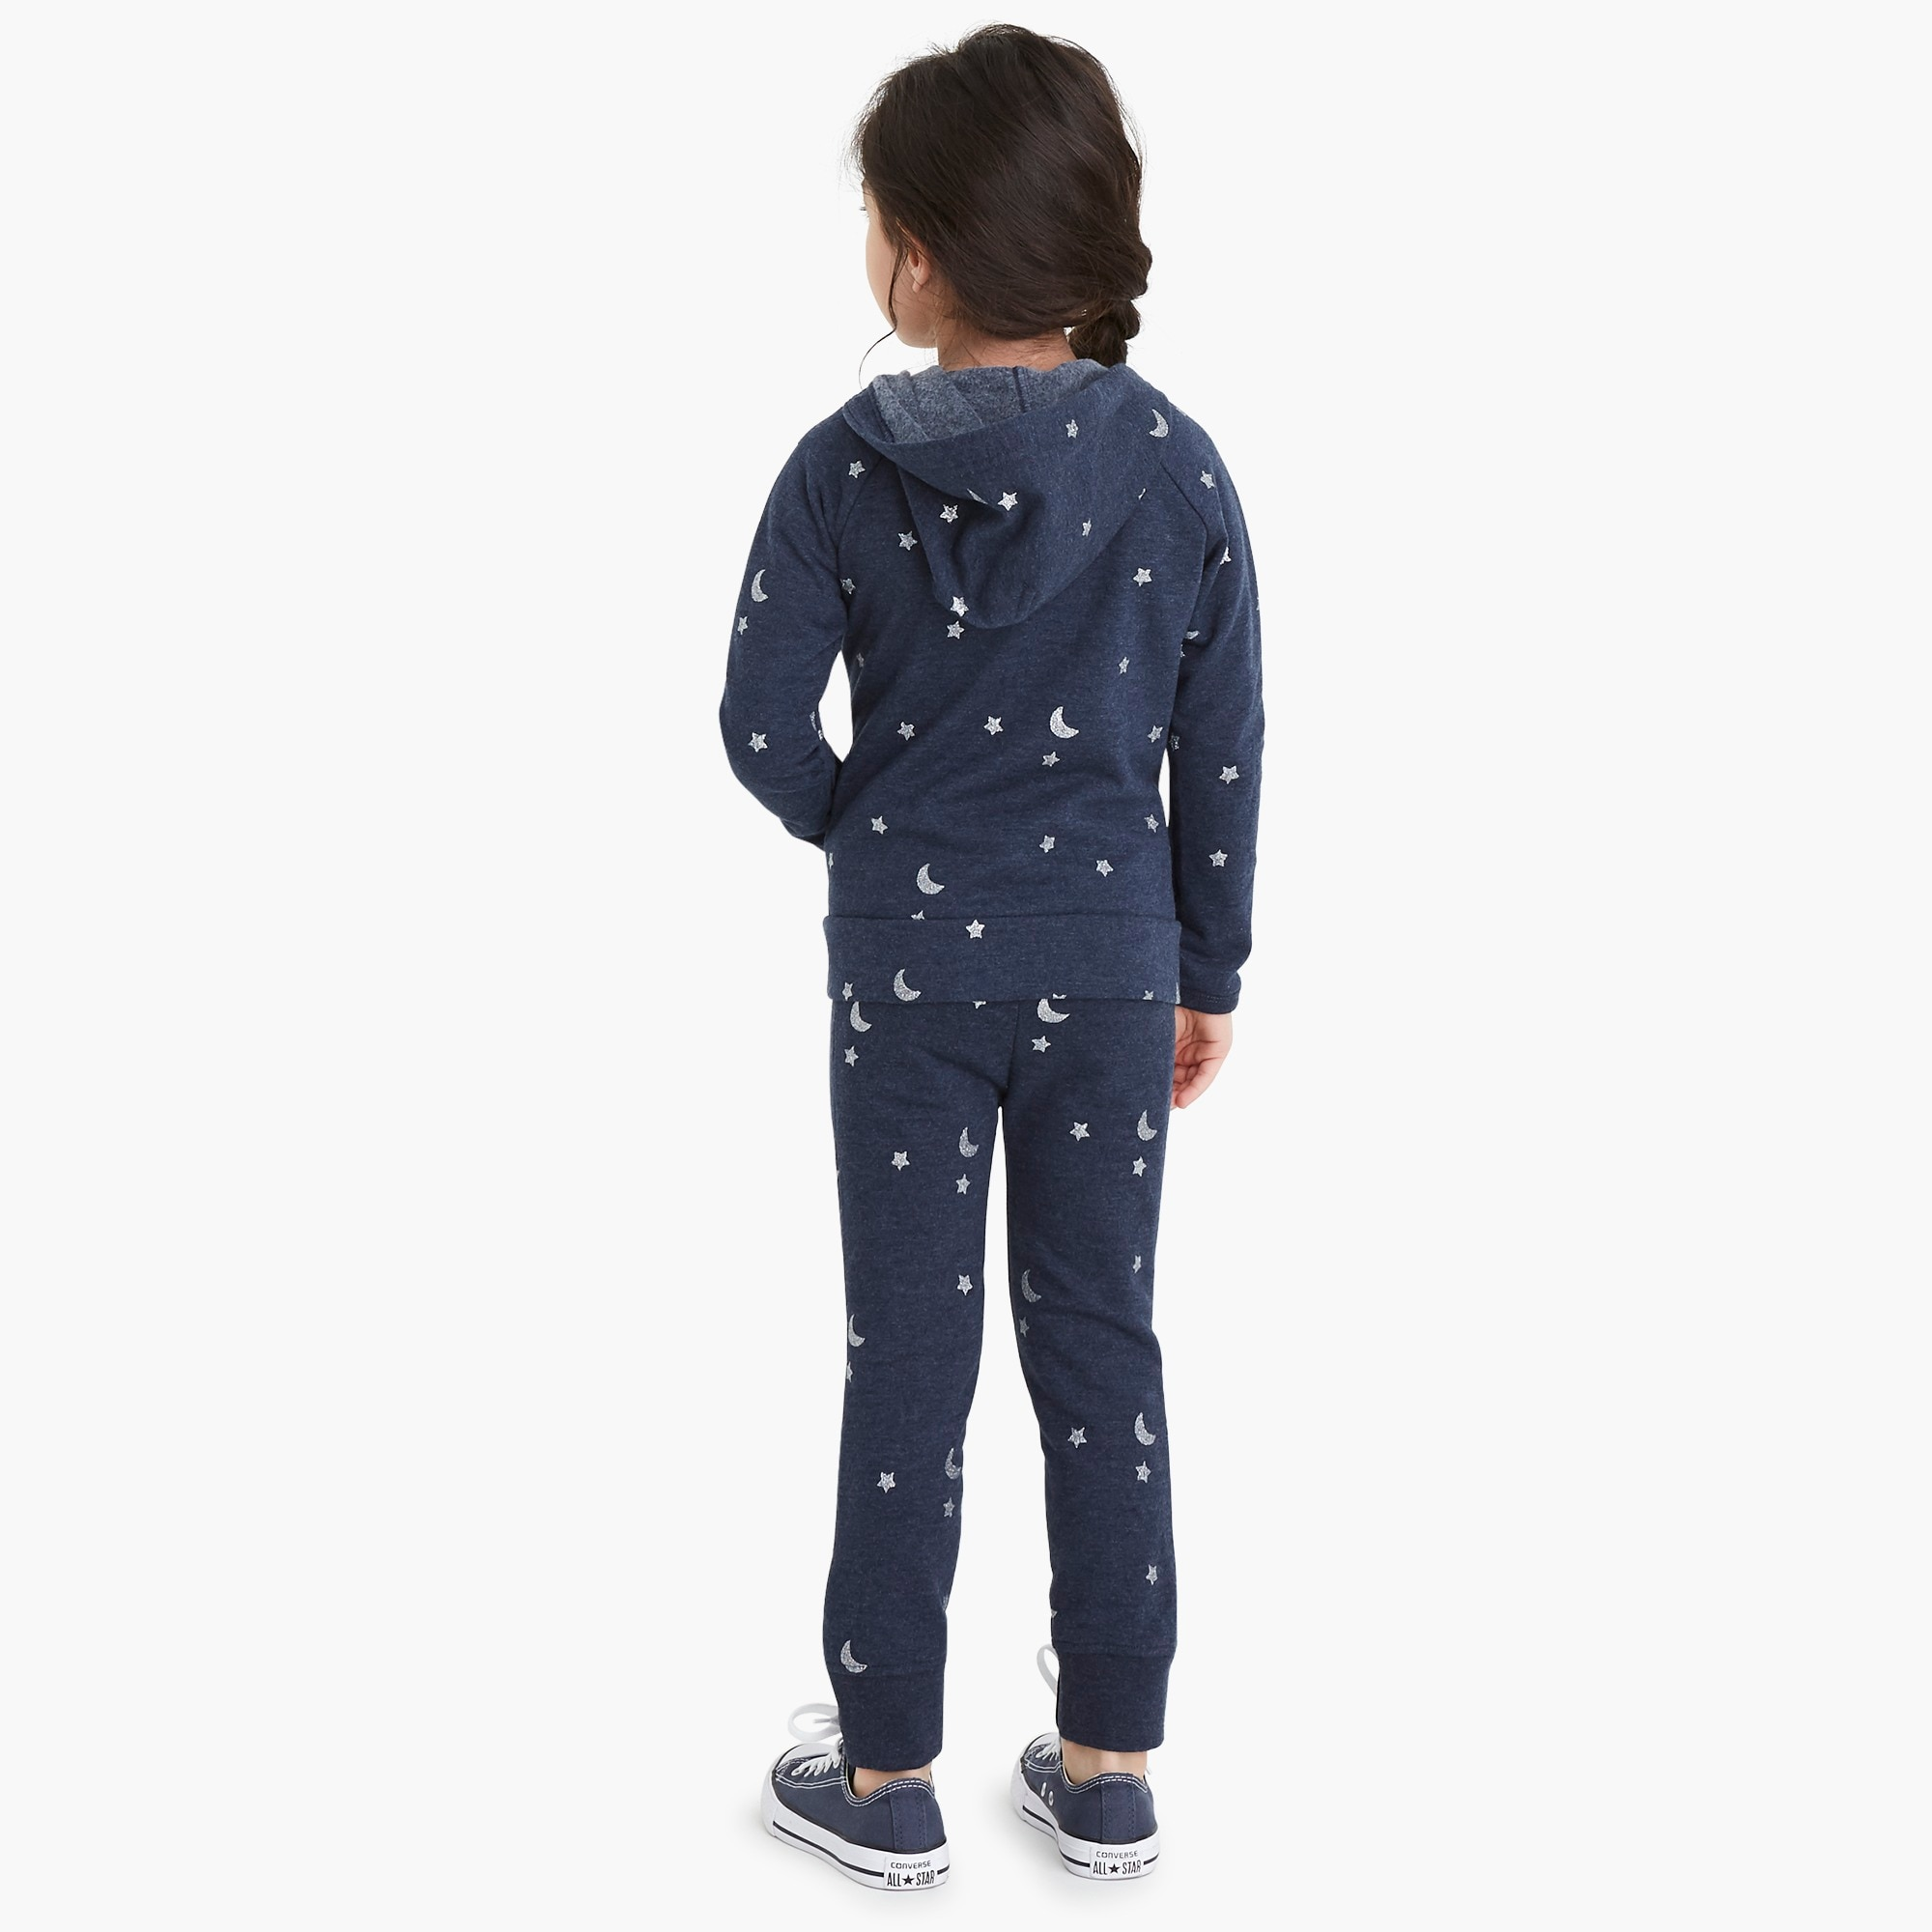 Image 3 for Girls' sweatpants in star and moon print